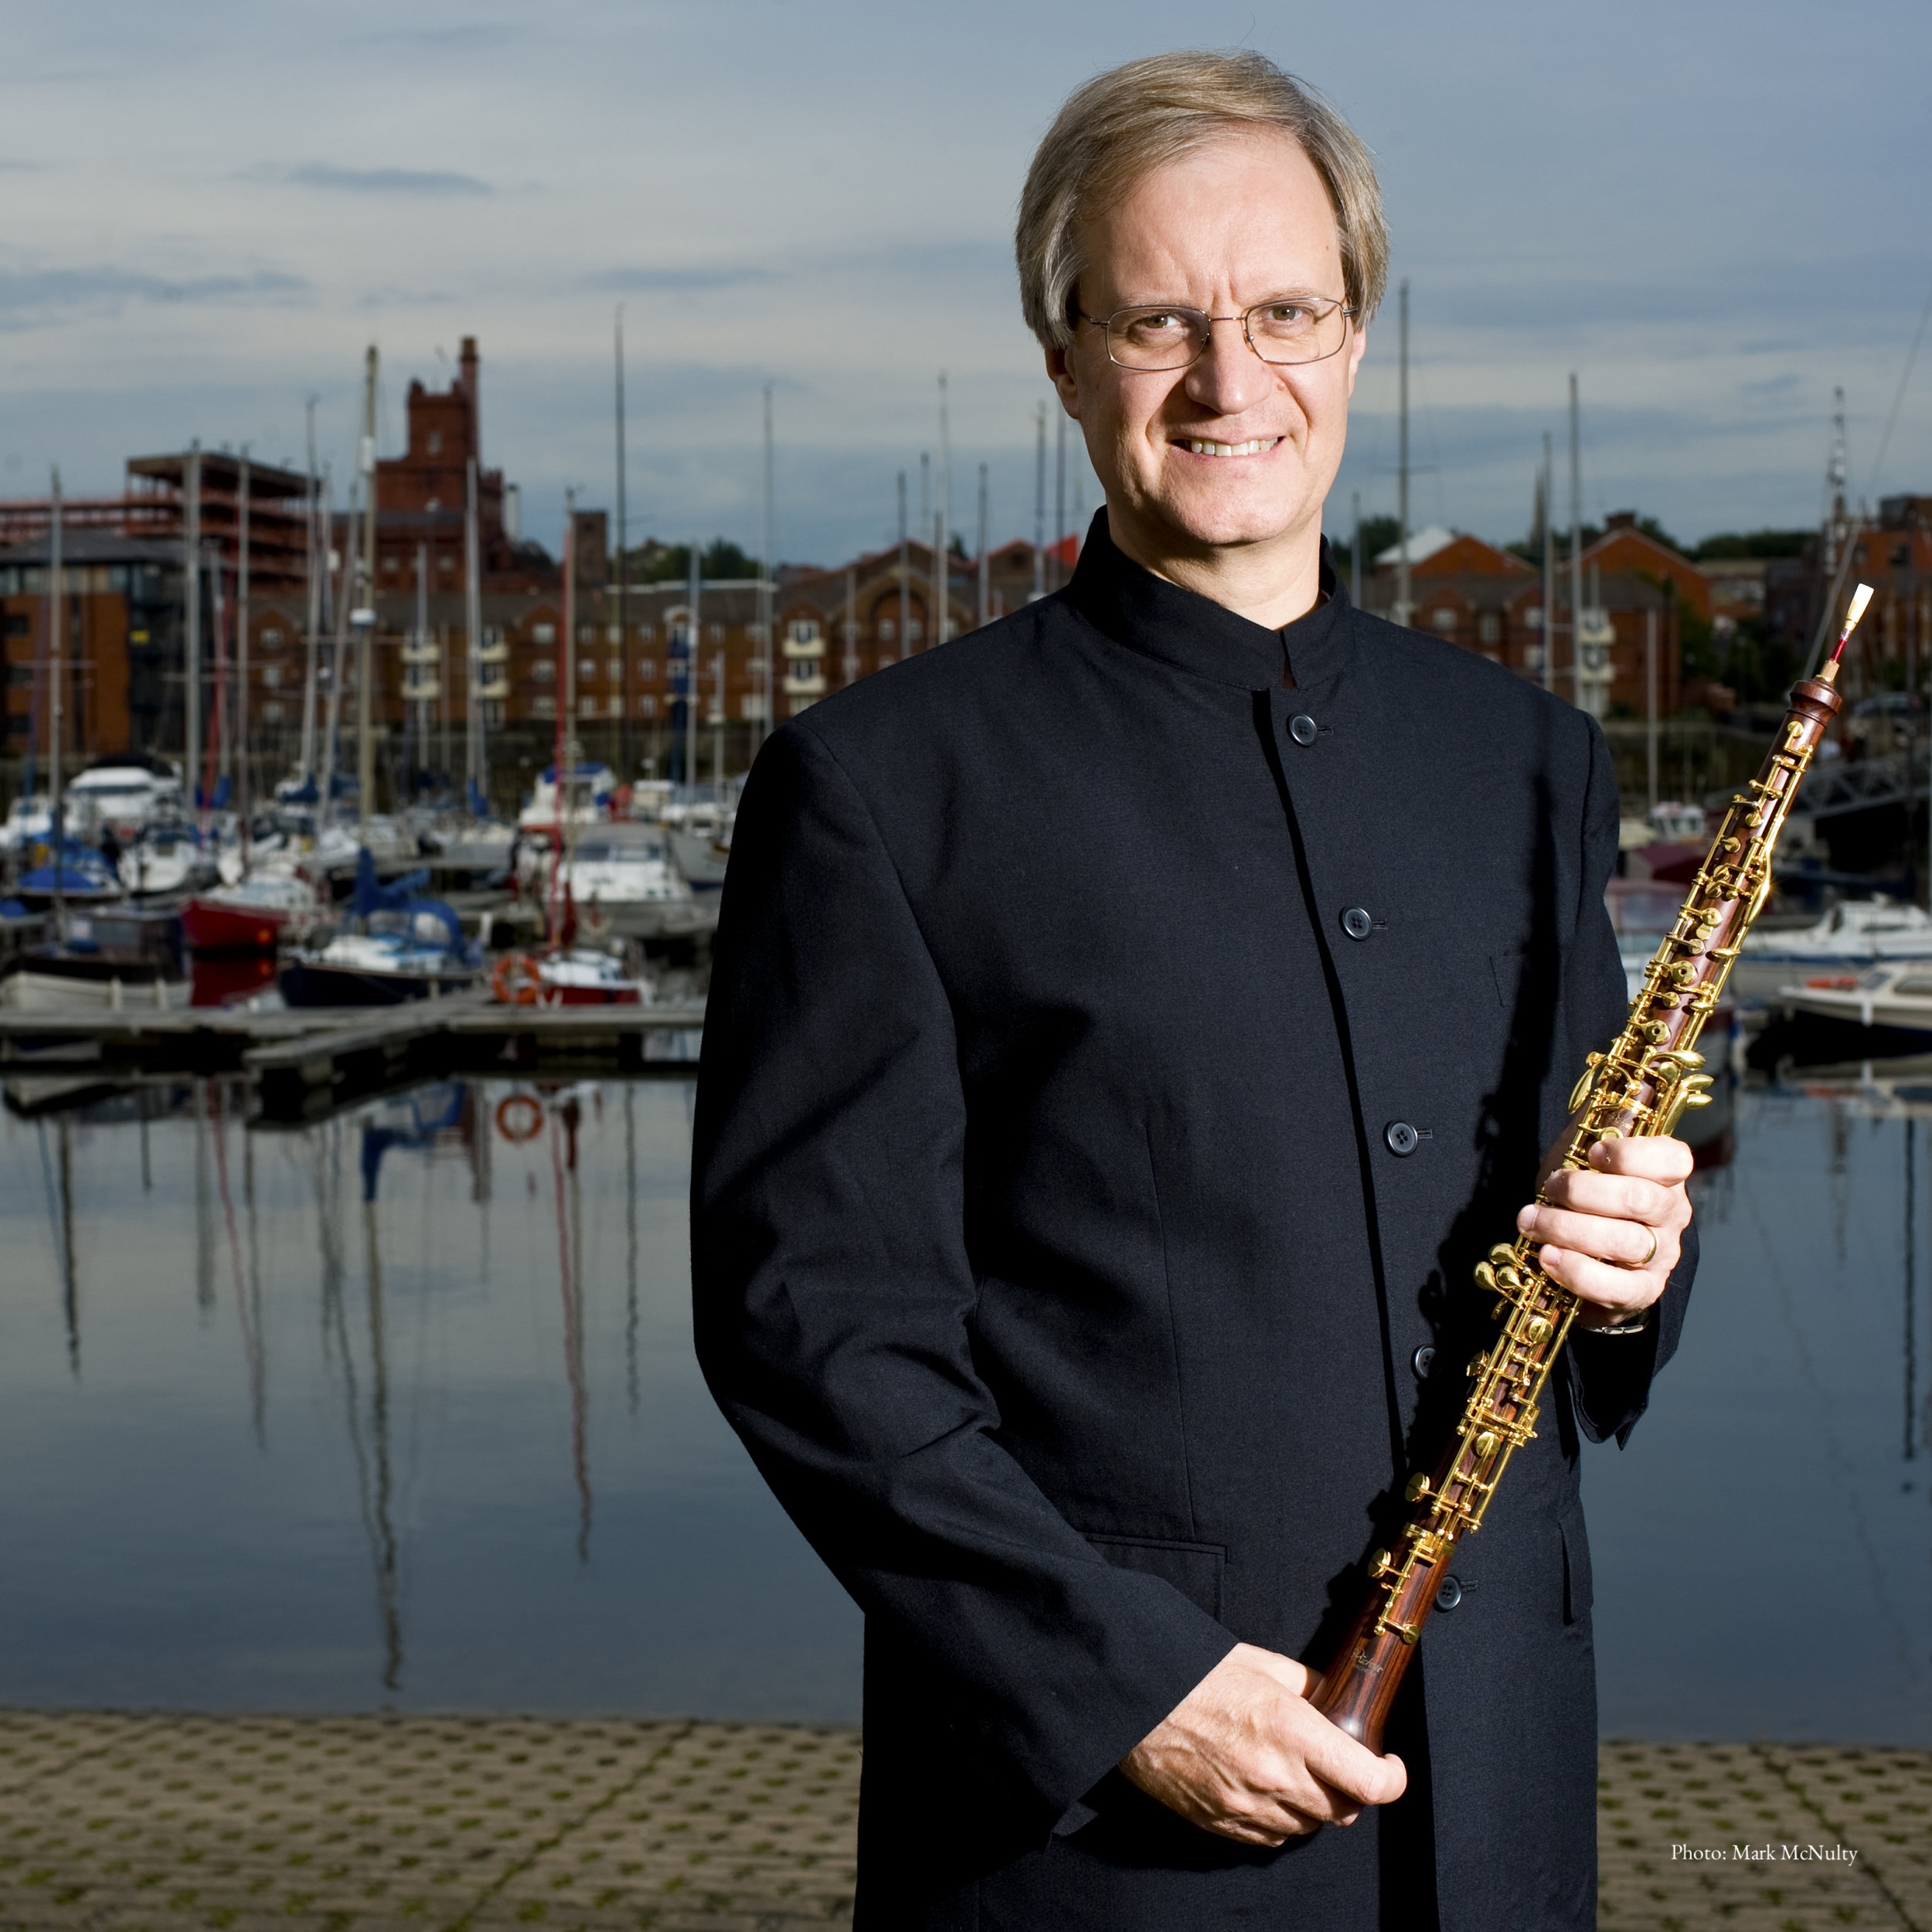 JONATHAN SMALL - OBOIST|CONDUCTOR|TEACHER